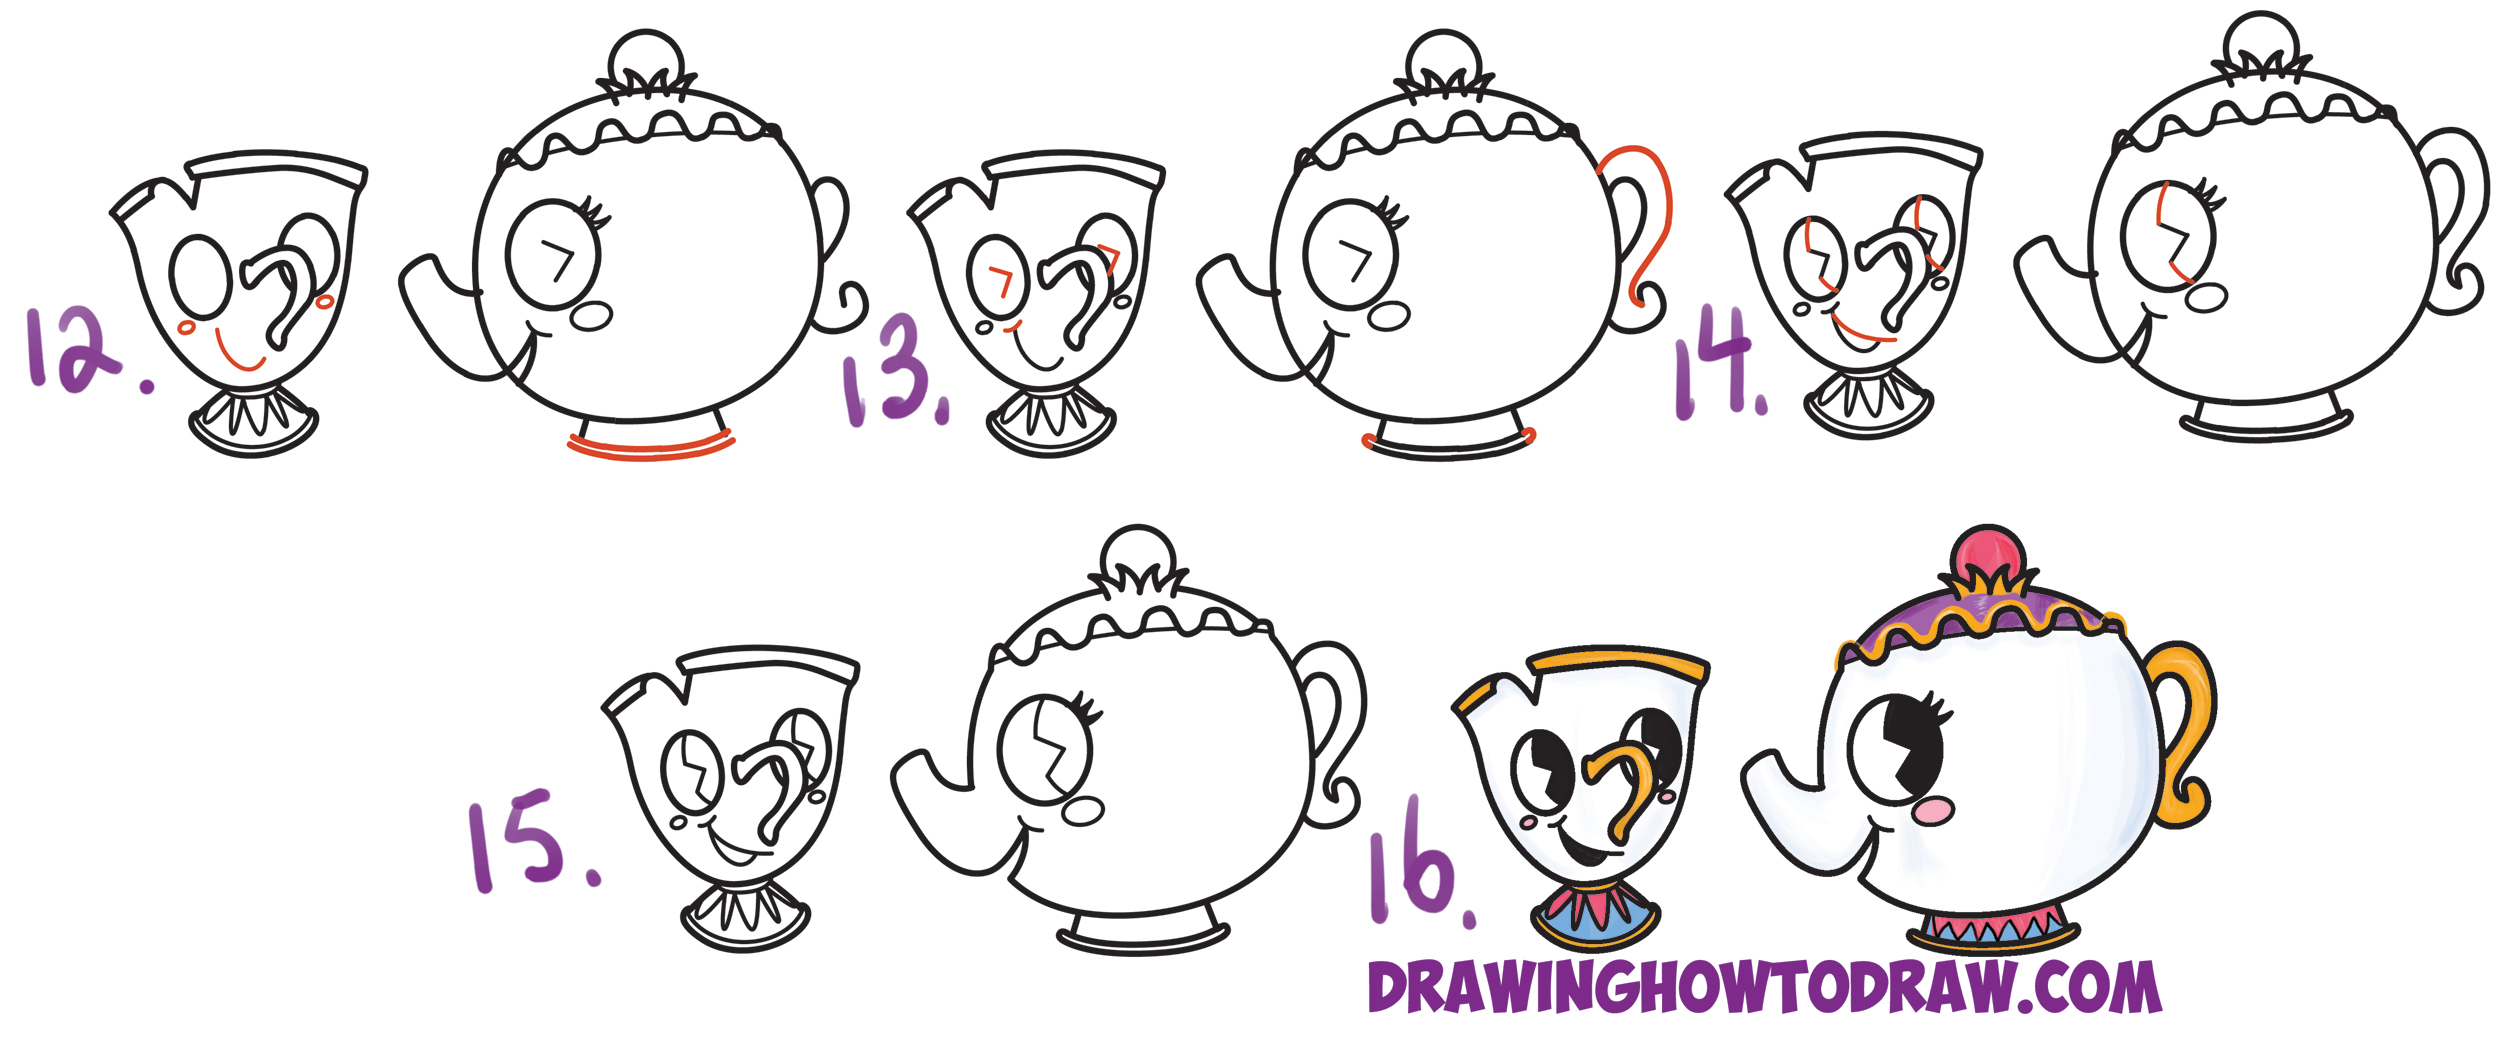 Learn How to Draw Cute Kawaii / Chibi Mrs. Potts and Chip from Beauty and the Beast Simple Steps Drawing Lesson for Children and Beginners